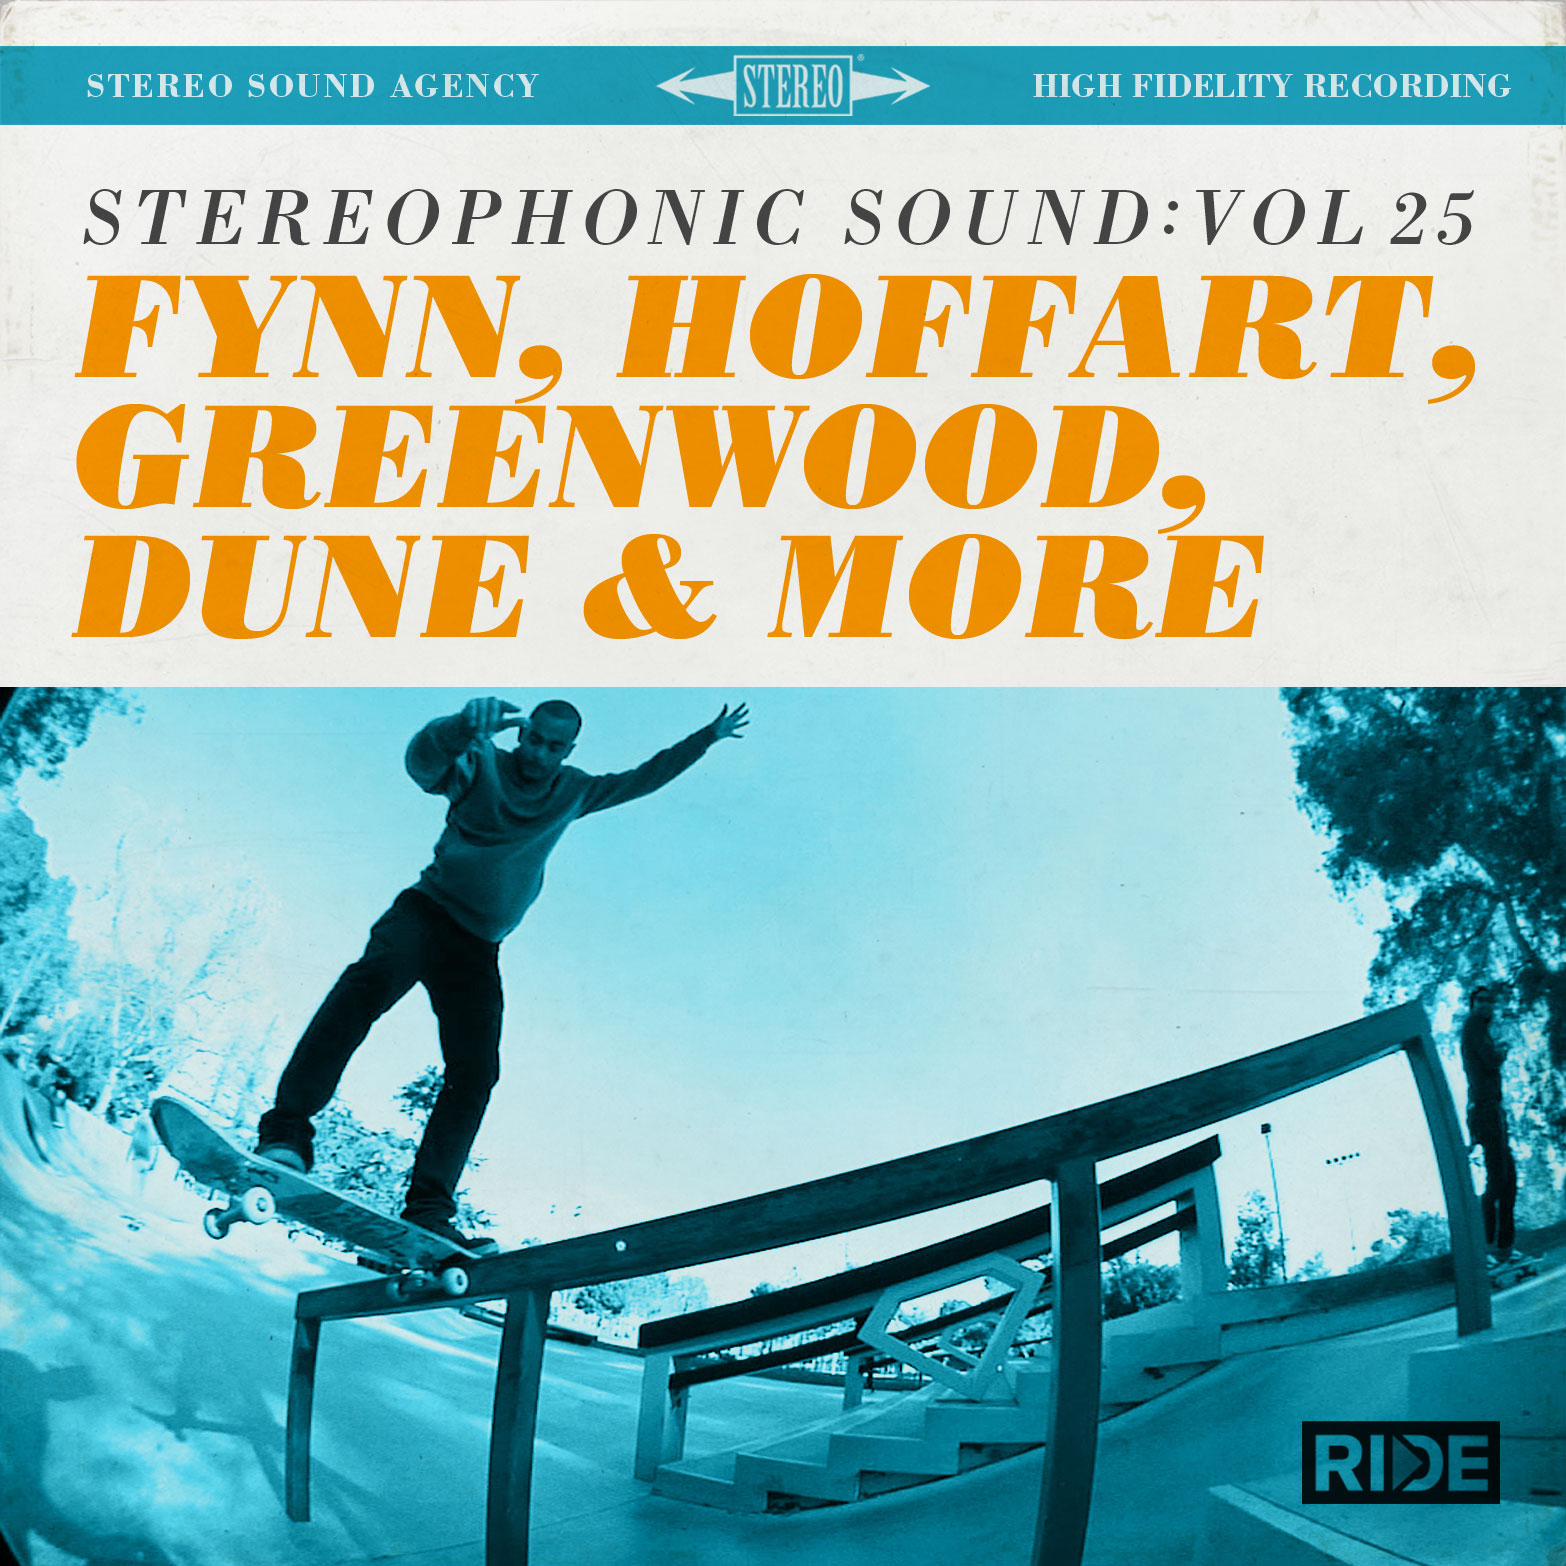 Stereophonic-sound-volume-25.jpg